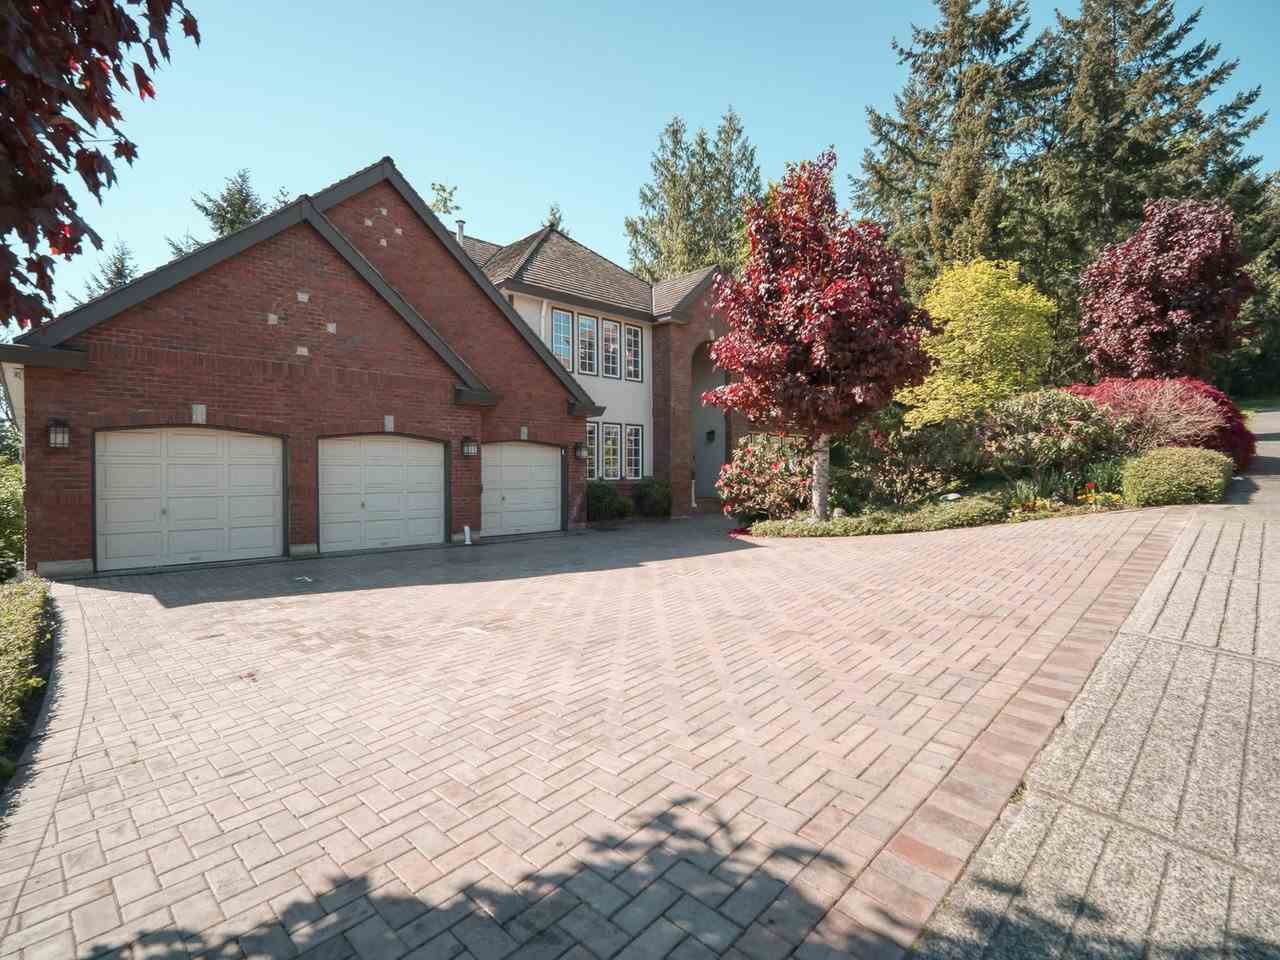 2230 SORRENTO DRIVE - Coquitlam East House/Single Family for sale, 7 Bedrooms (R2486857) - #1